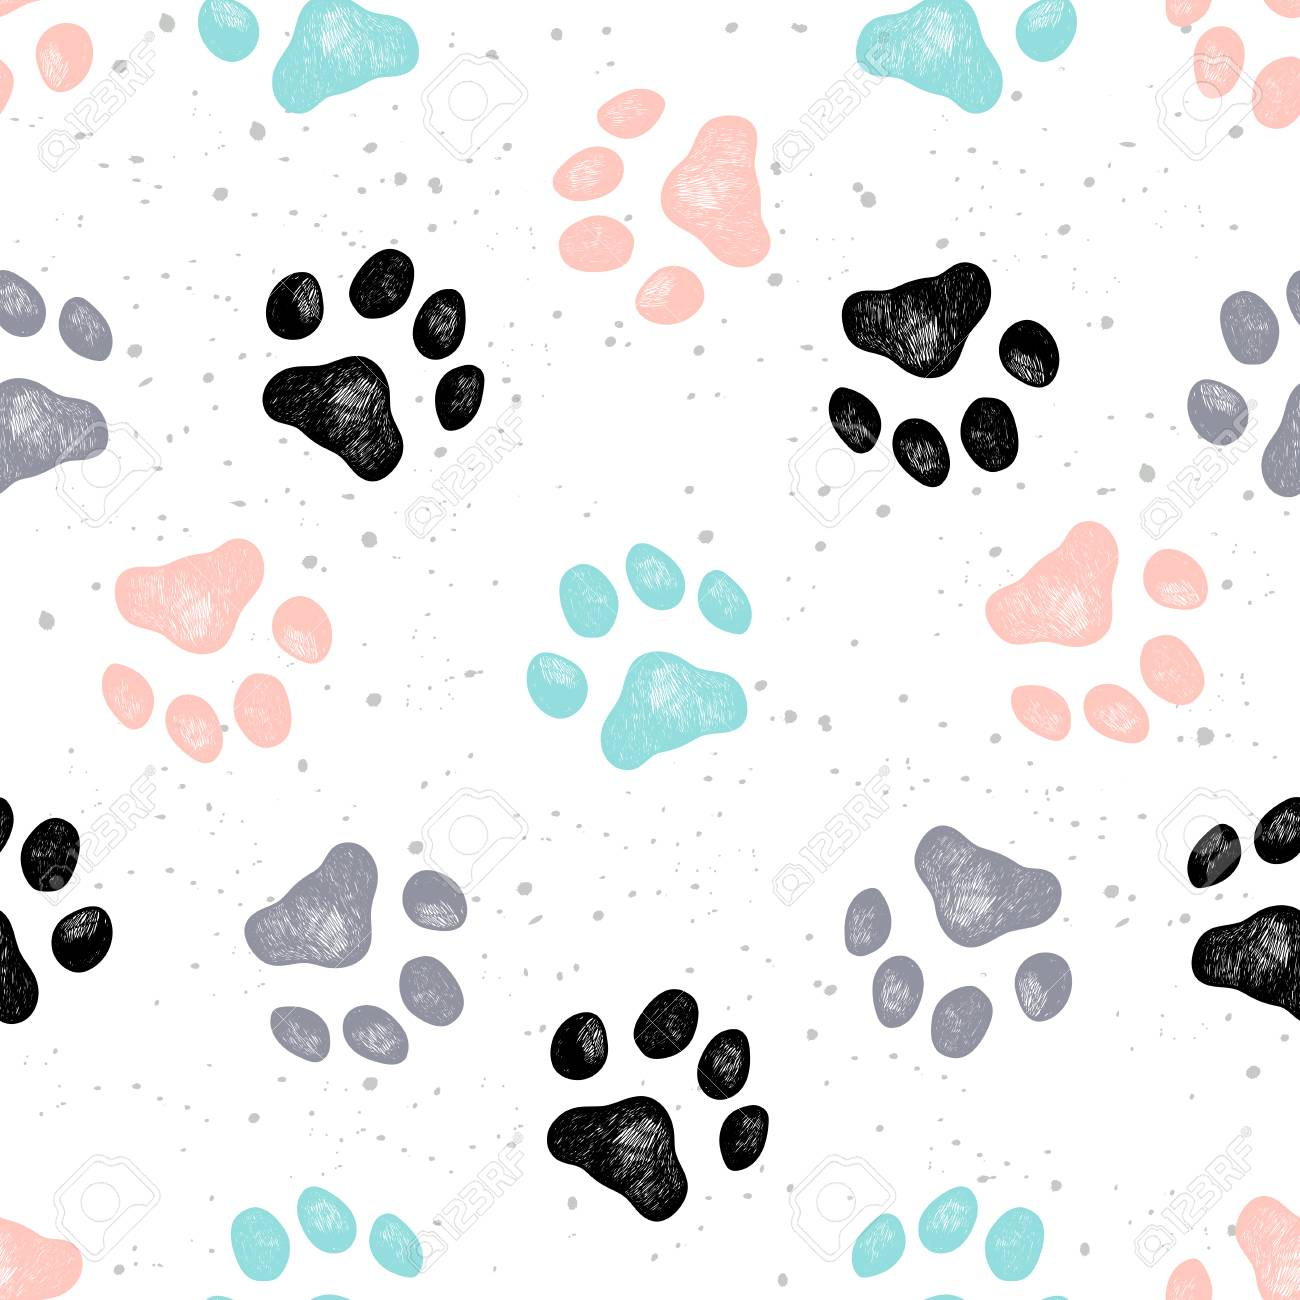 4336e3693835 Vector - Vector illustration seamless texture composed with sketches of dog  paw prints.